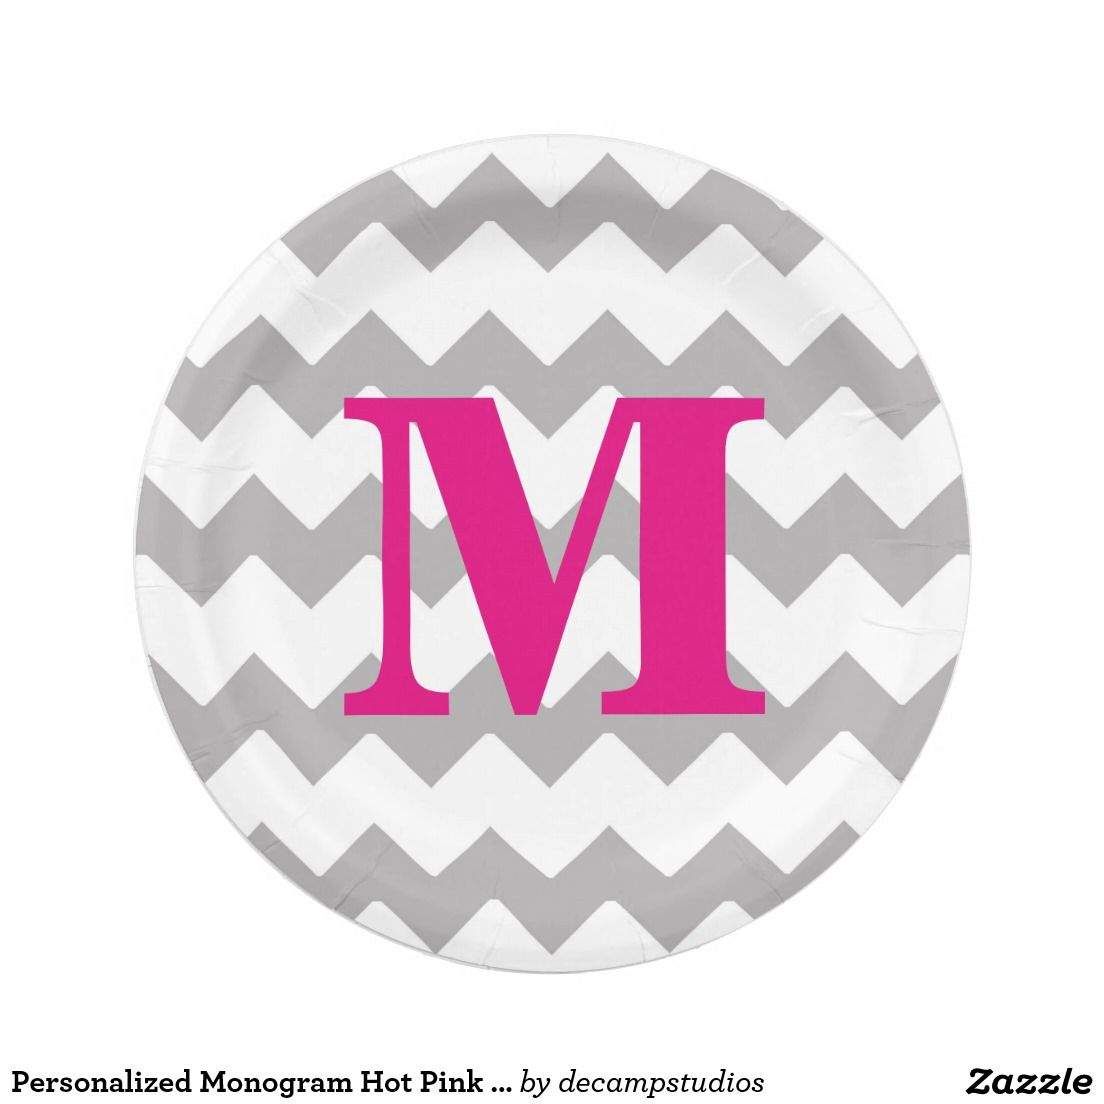 Personalized Monogram Hot Pink Grey Gray Chevron Paper Plate  sc 1 st  Pinterest & Personalized Monogram Hot Pink Grey Gray Chevron Paper Plate | Grey ...